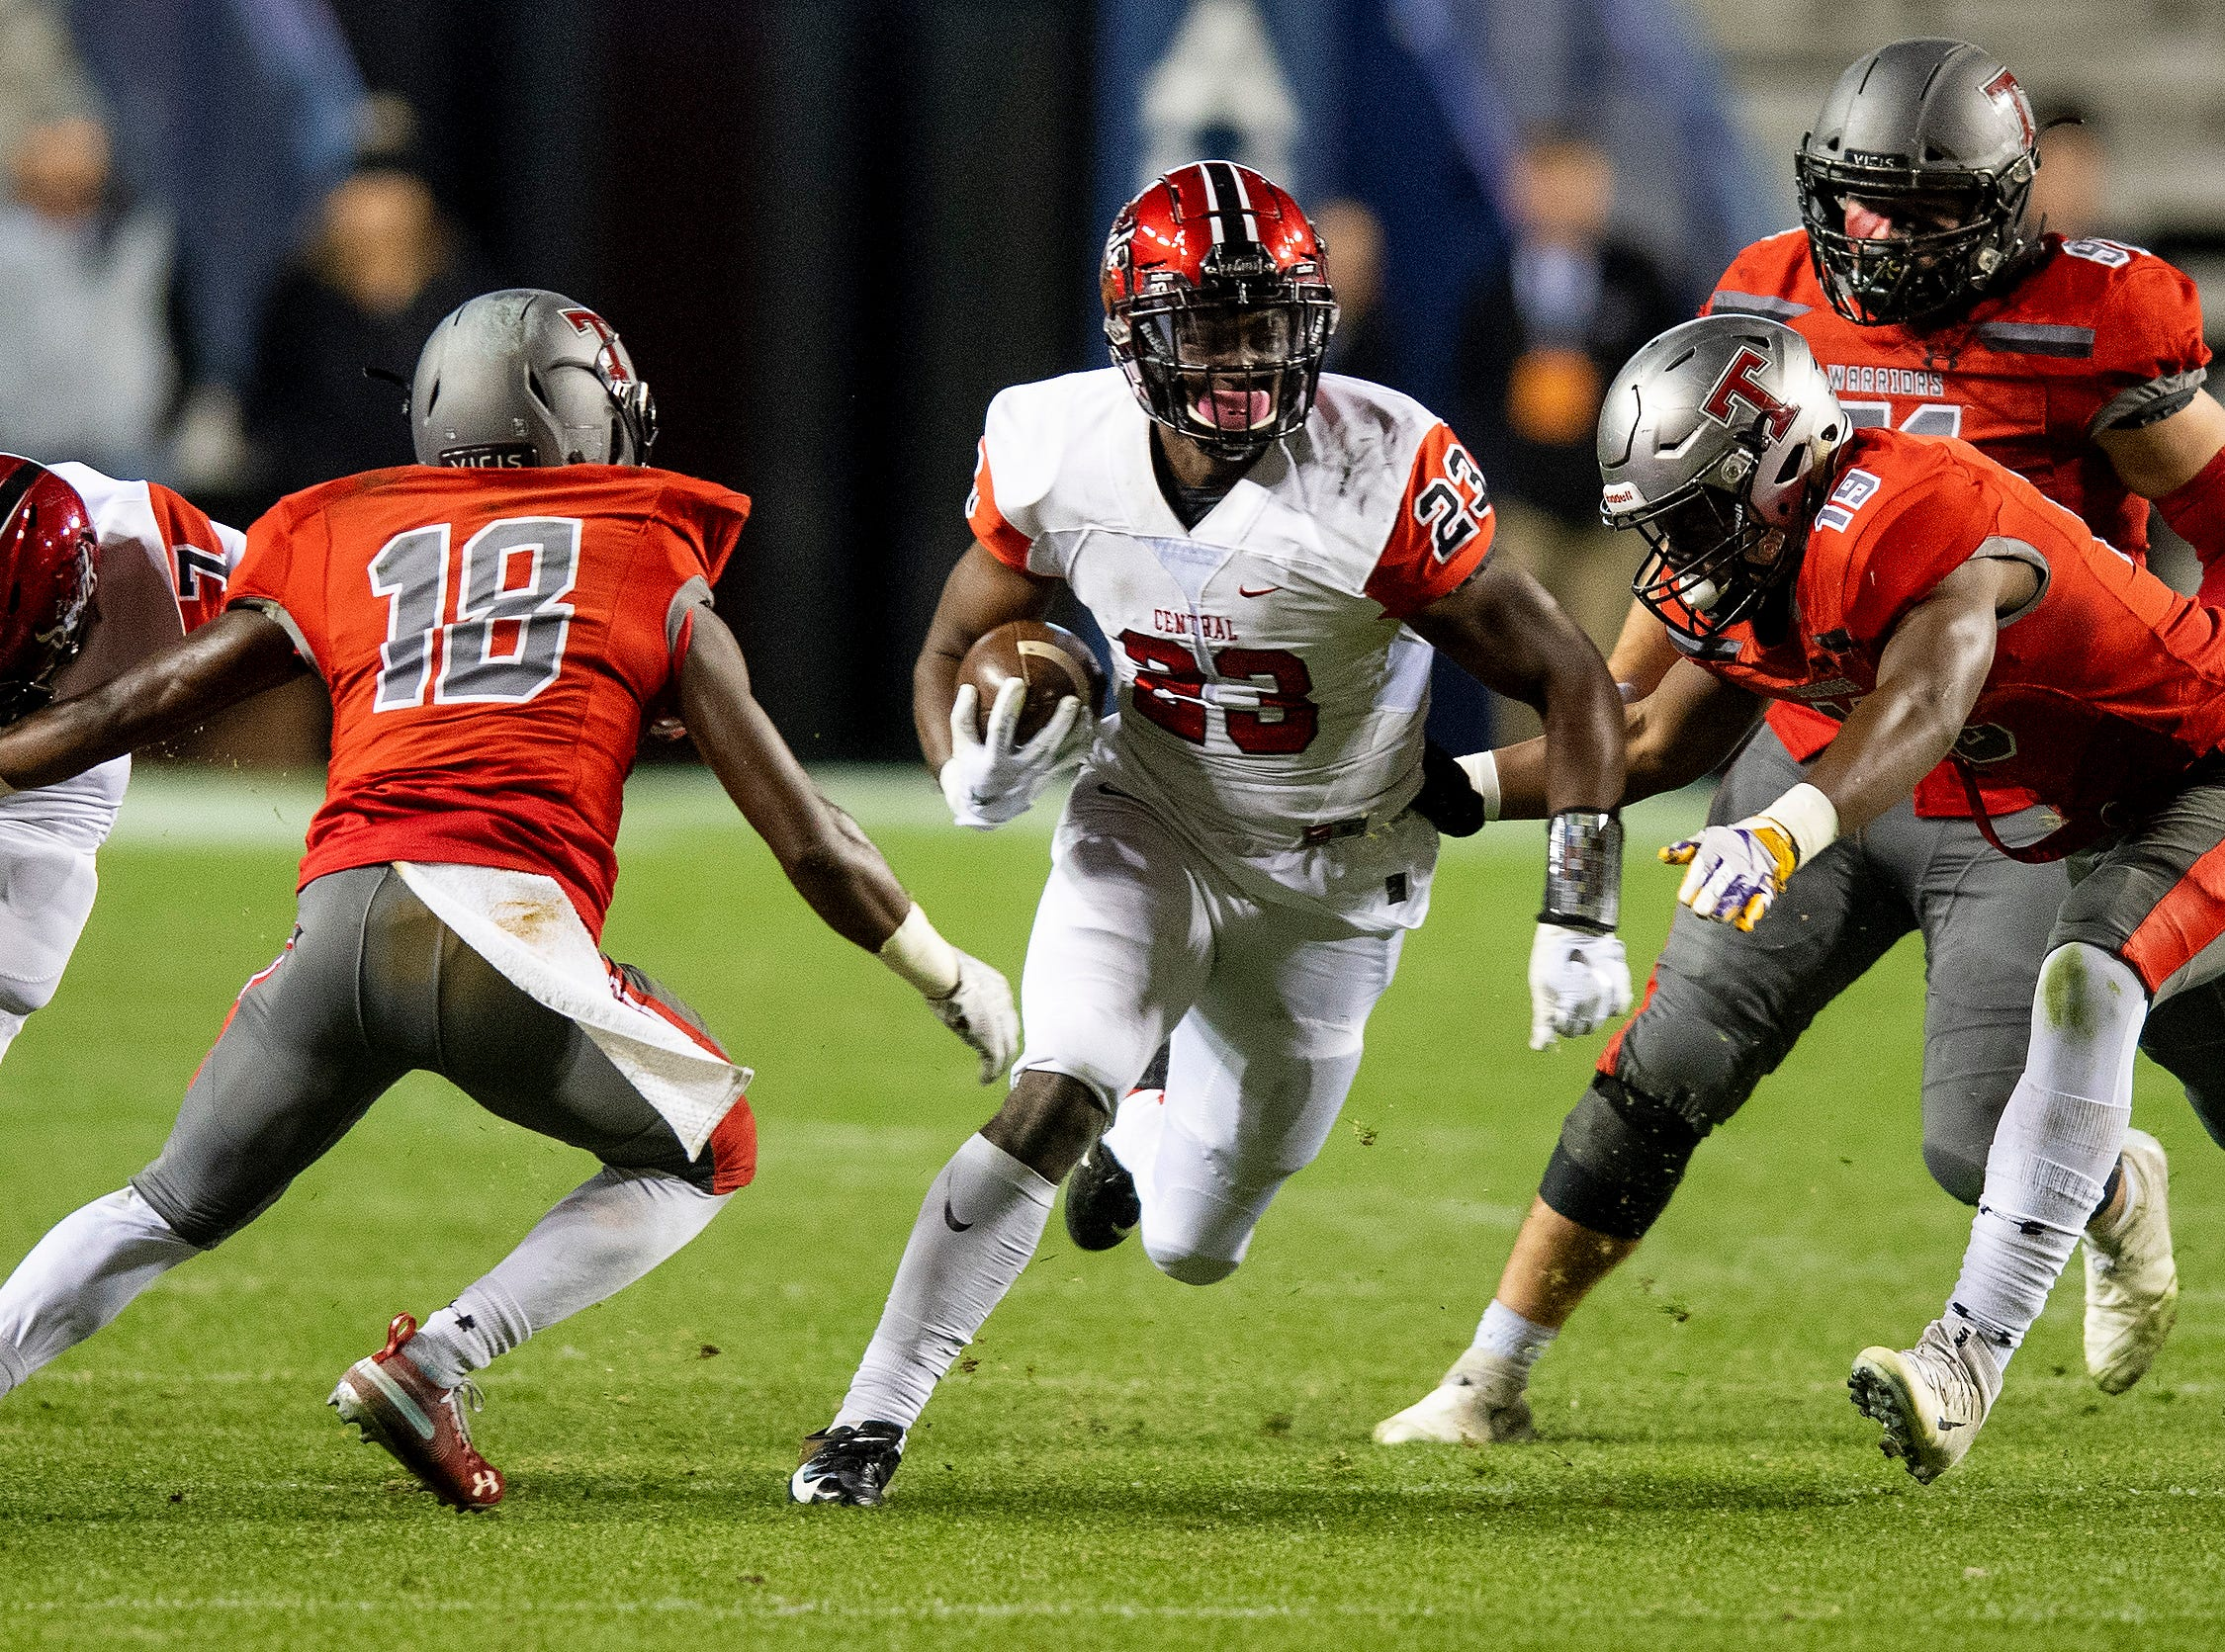 Central-Phenix City's Joseph McKay carries the ball against   Thompson during the AHSAA Class 7A State Championship Football Game at Jordan Hare Stadium in Auburn, Ala., on Wednesday evening December 5, 2018.